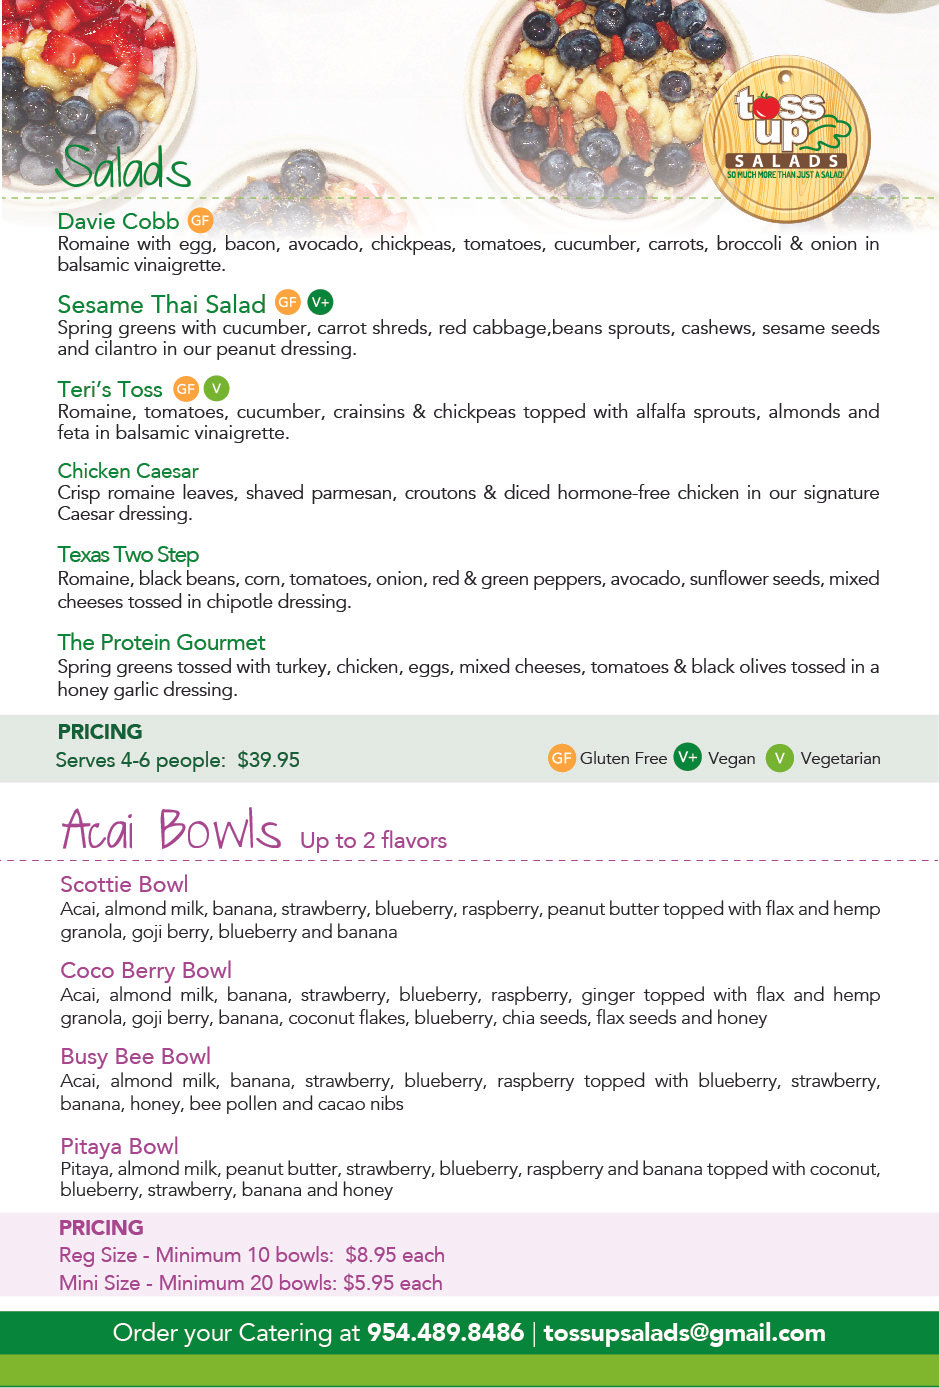 Catering Menu - Toss Up Salads-03.jpg